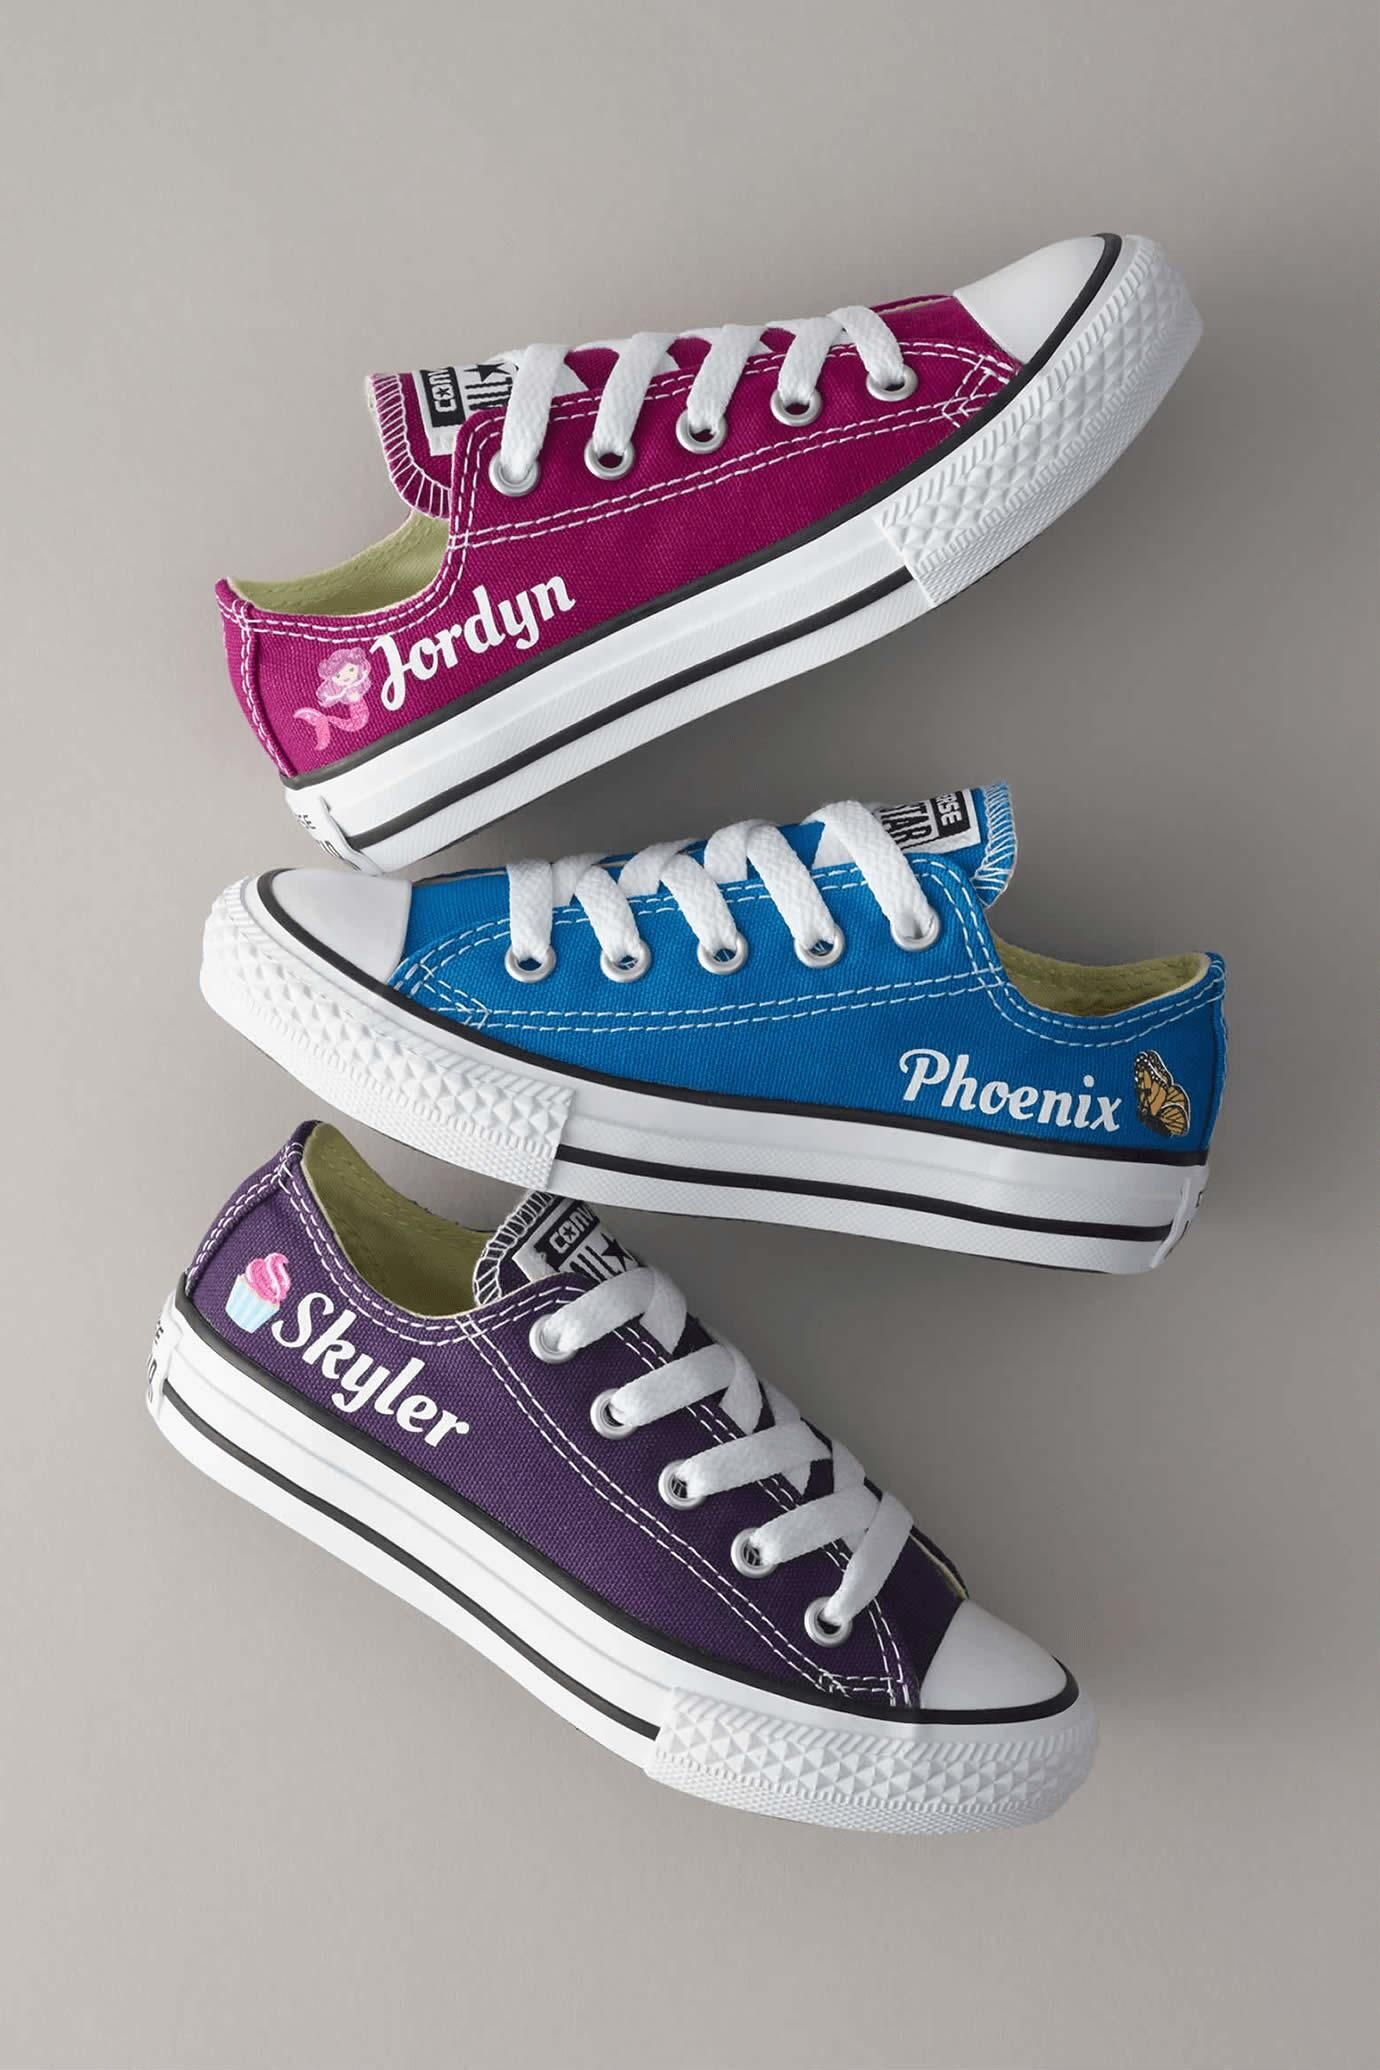 ef416fad78c Customize your own Chuck Taylors from Converse with your name